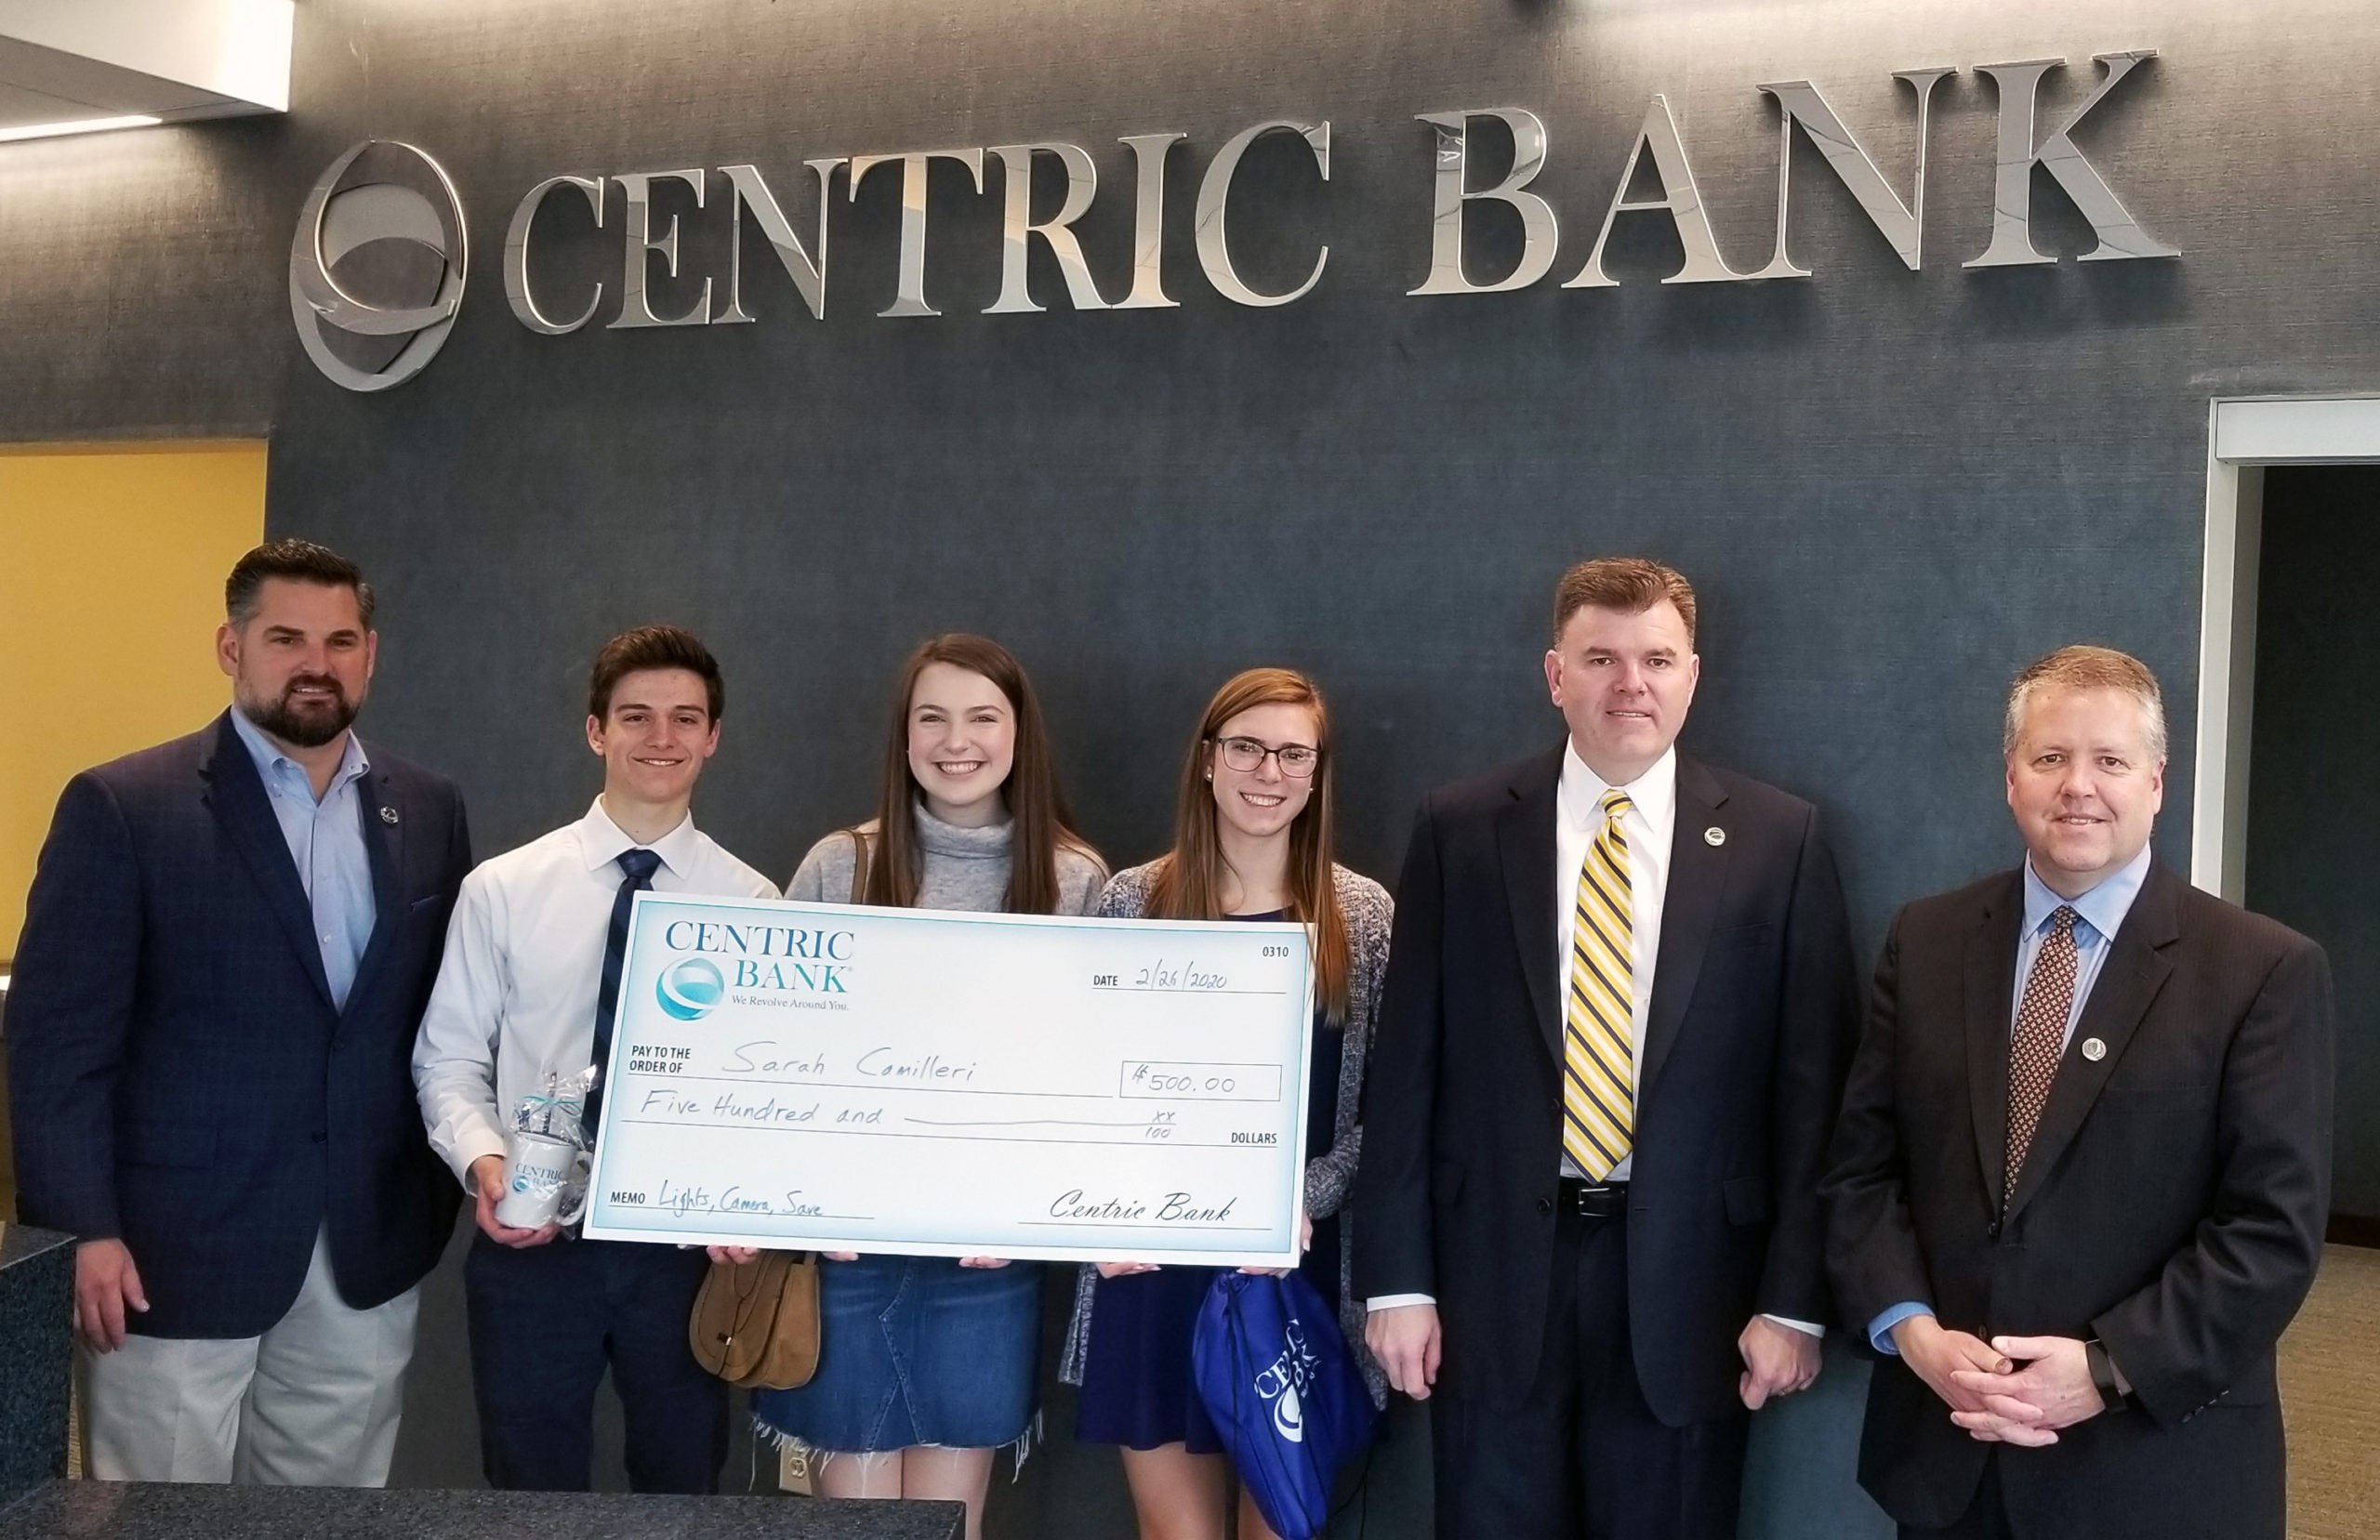 Centric Bank Recognizes Participants, Winners of Video Contest for High School Students